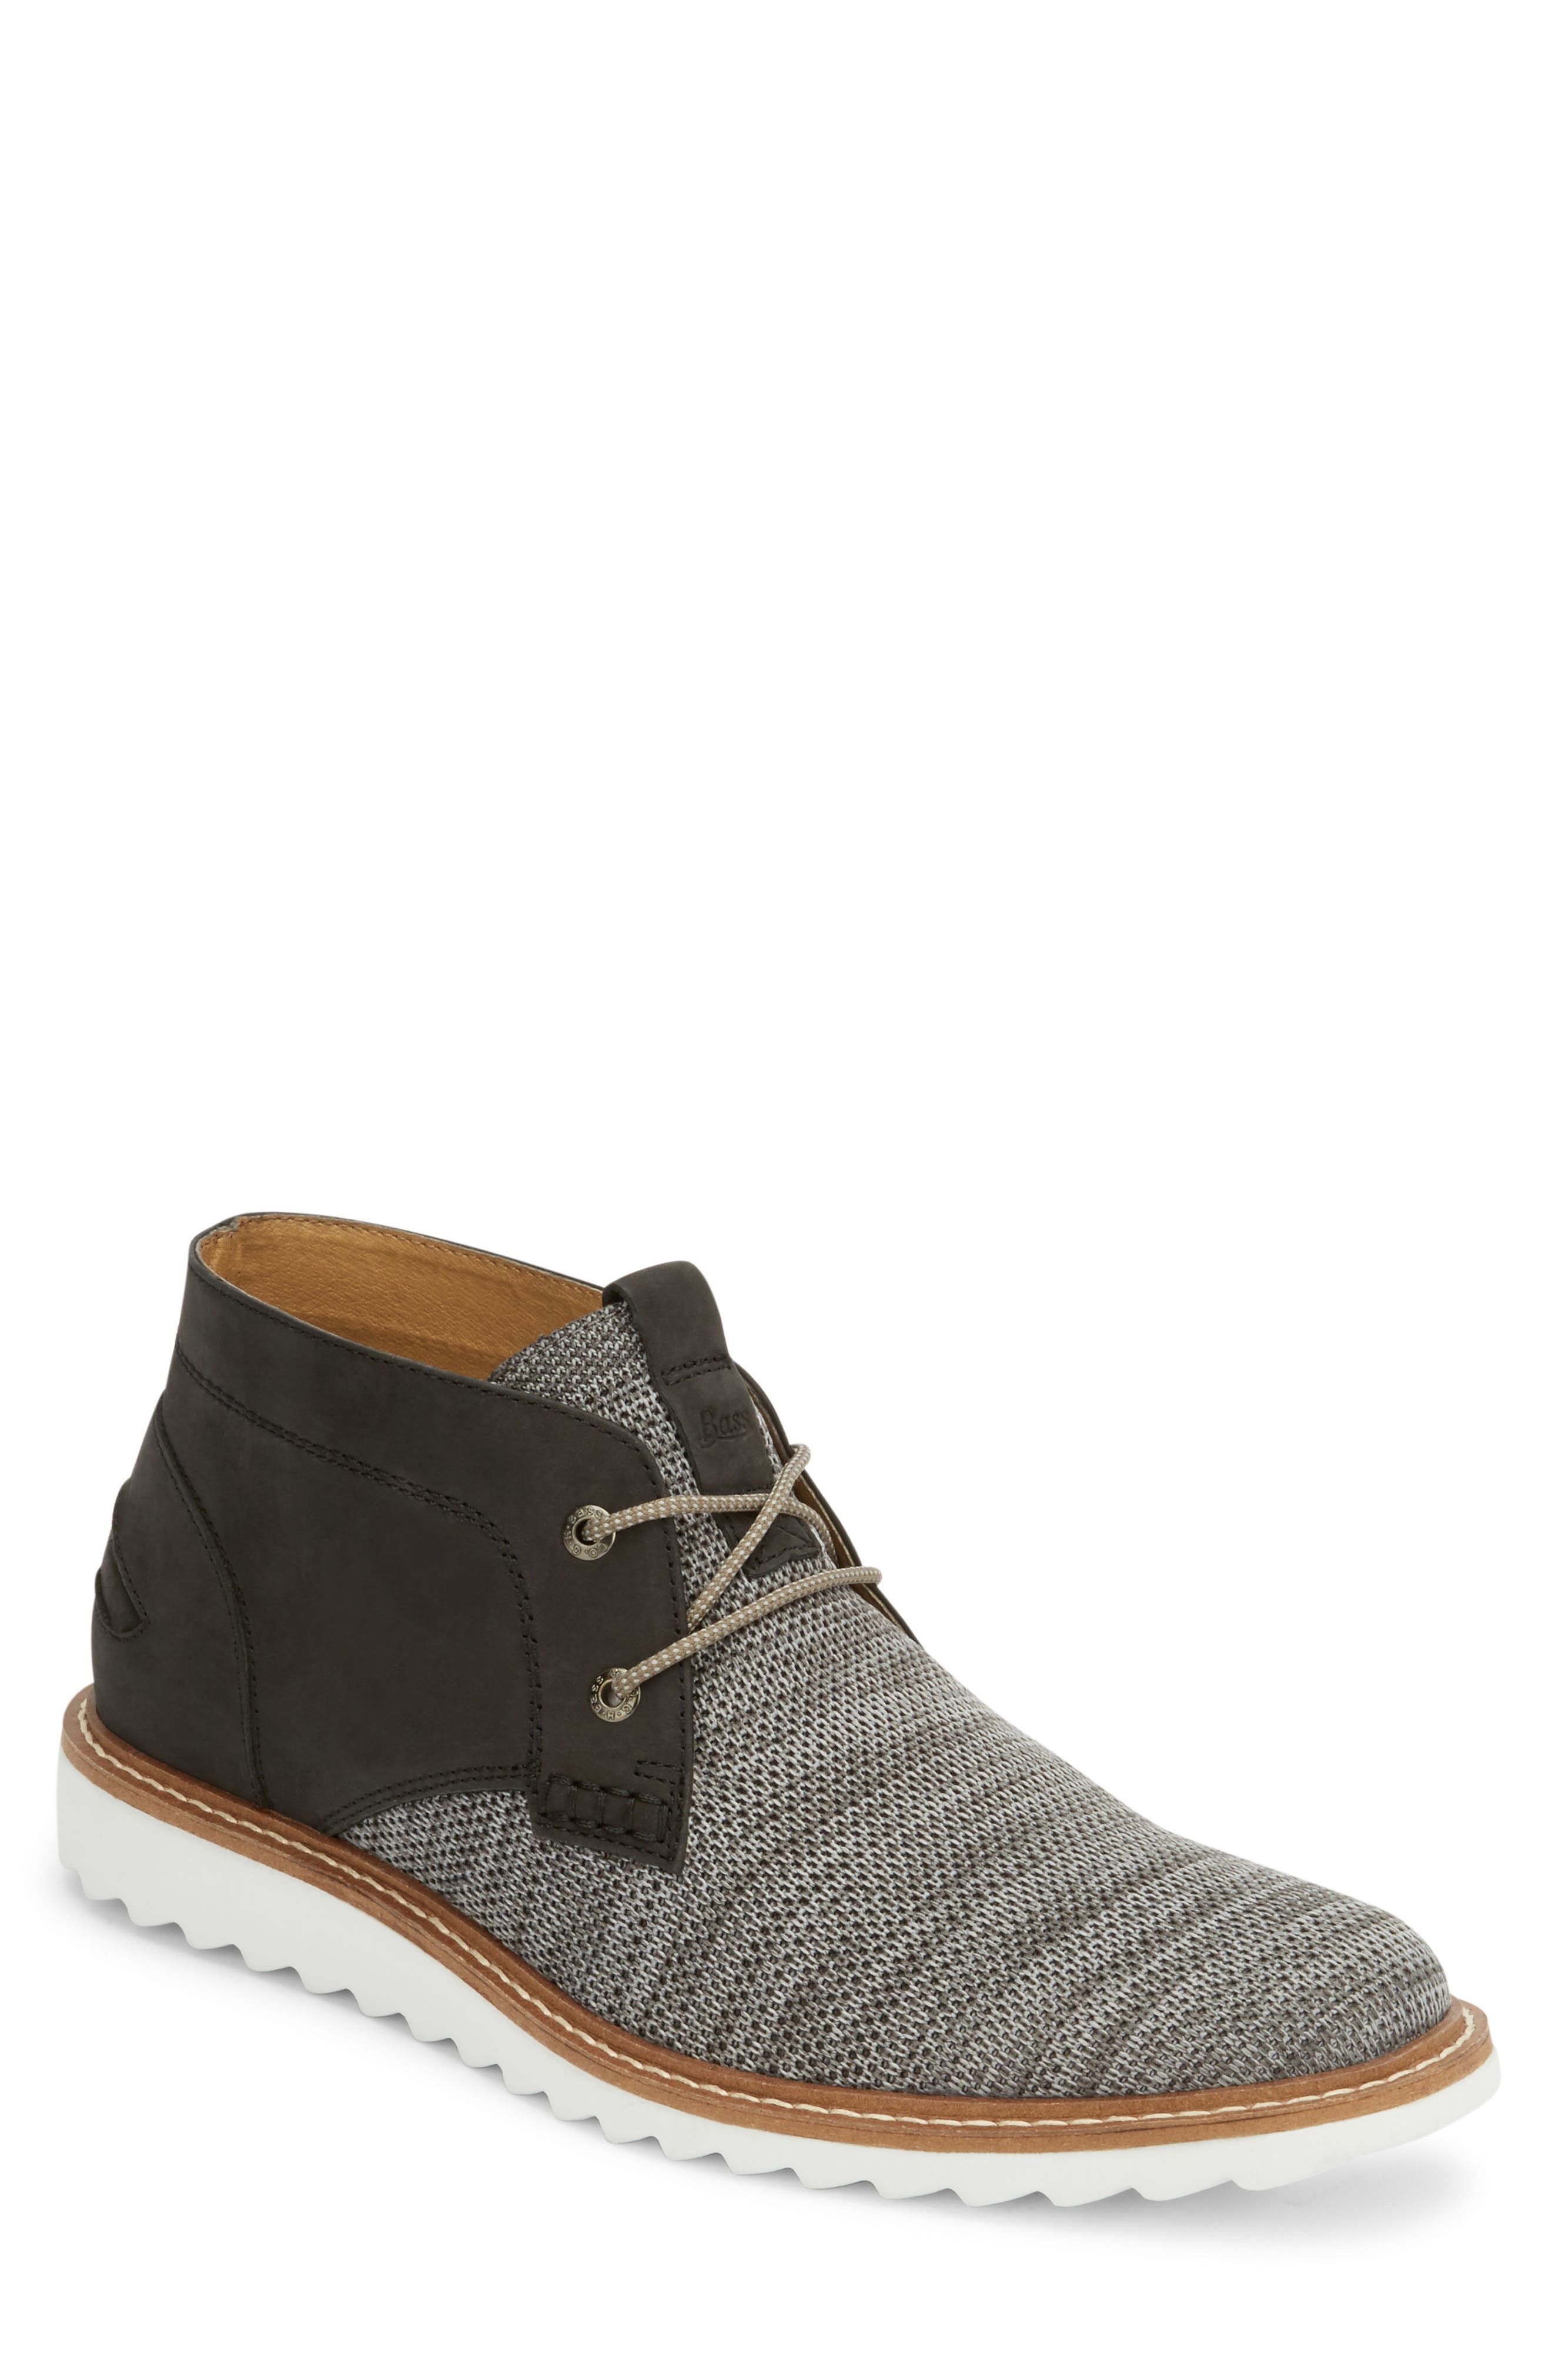 Buck 2.0 Chukka Boot,                         Main,                         color, 001